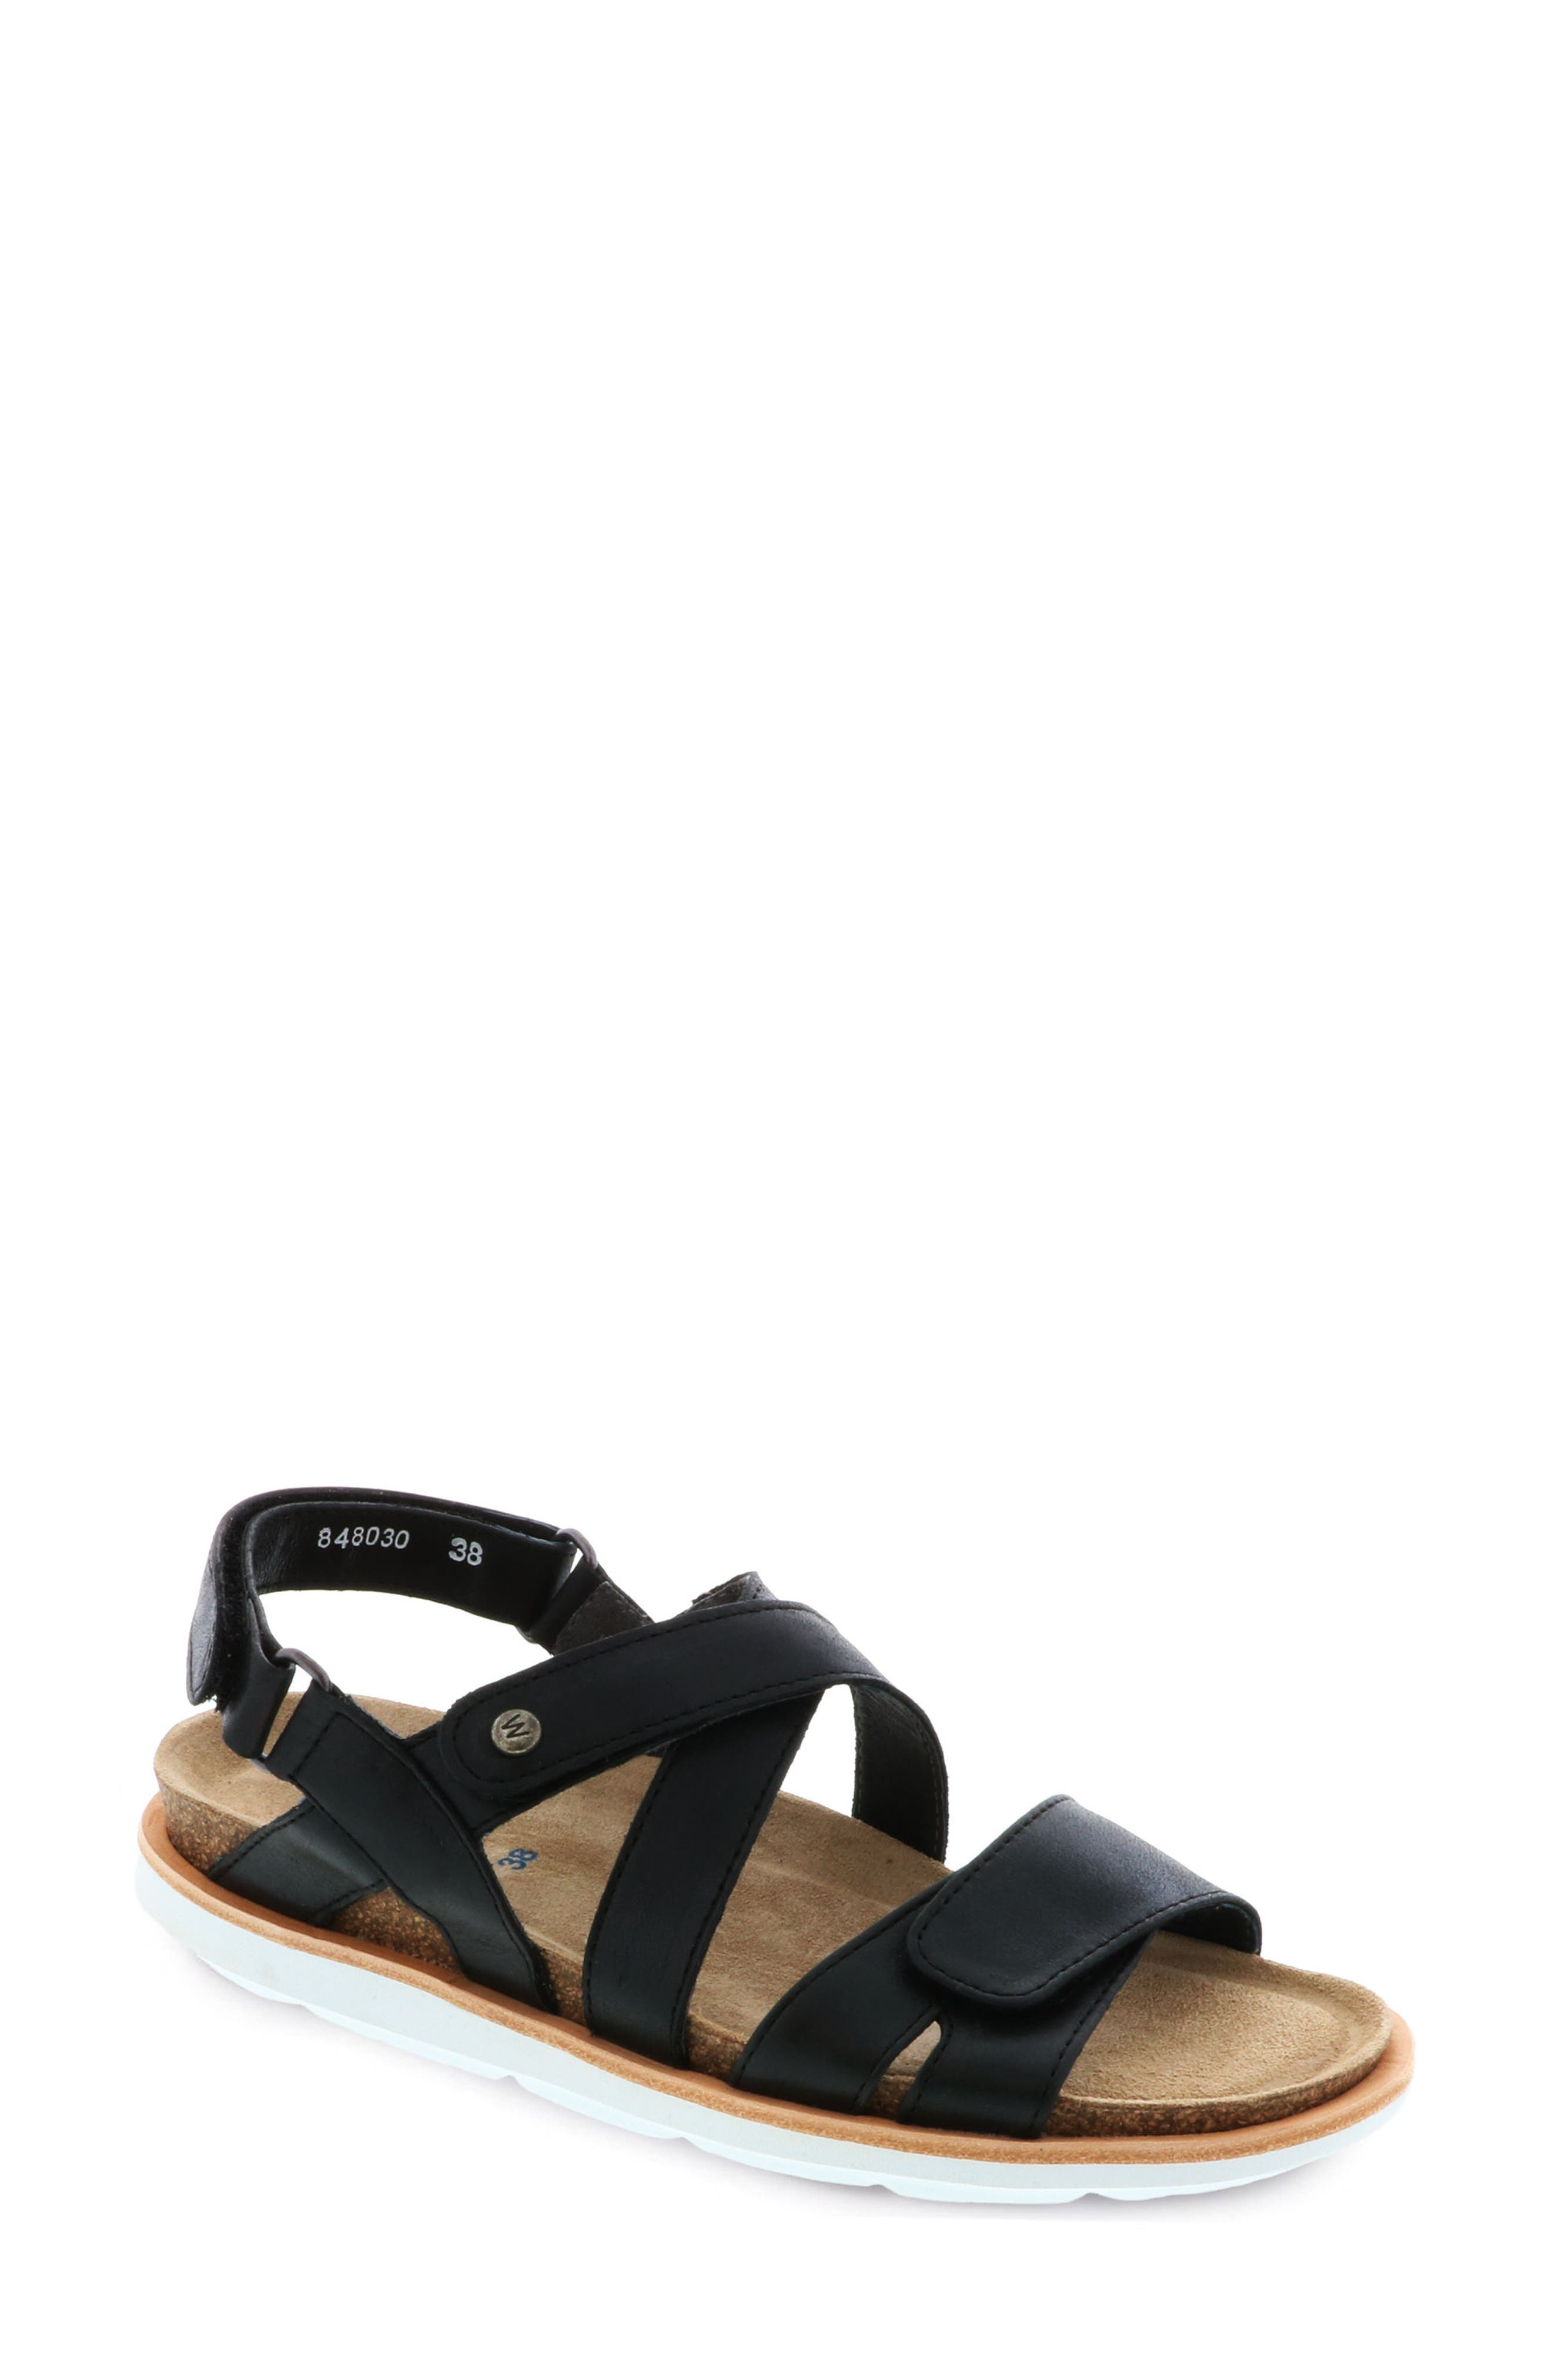 Wolky Sunstone Sandal (Women)